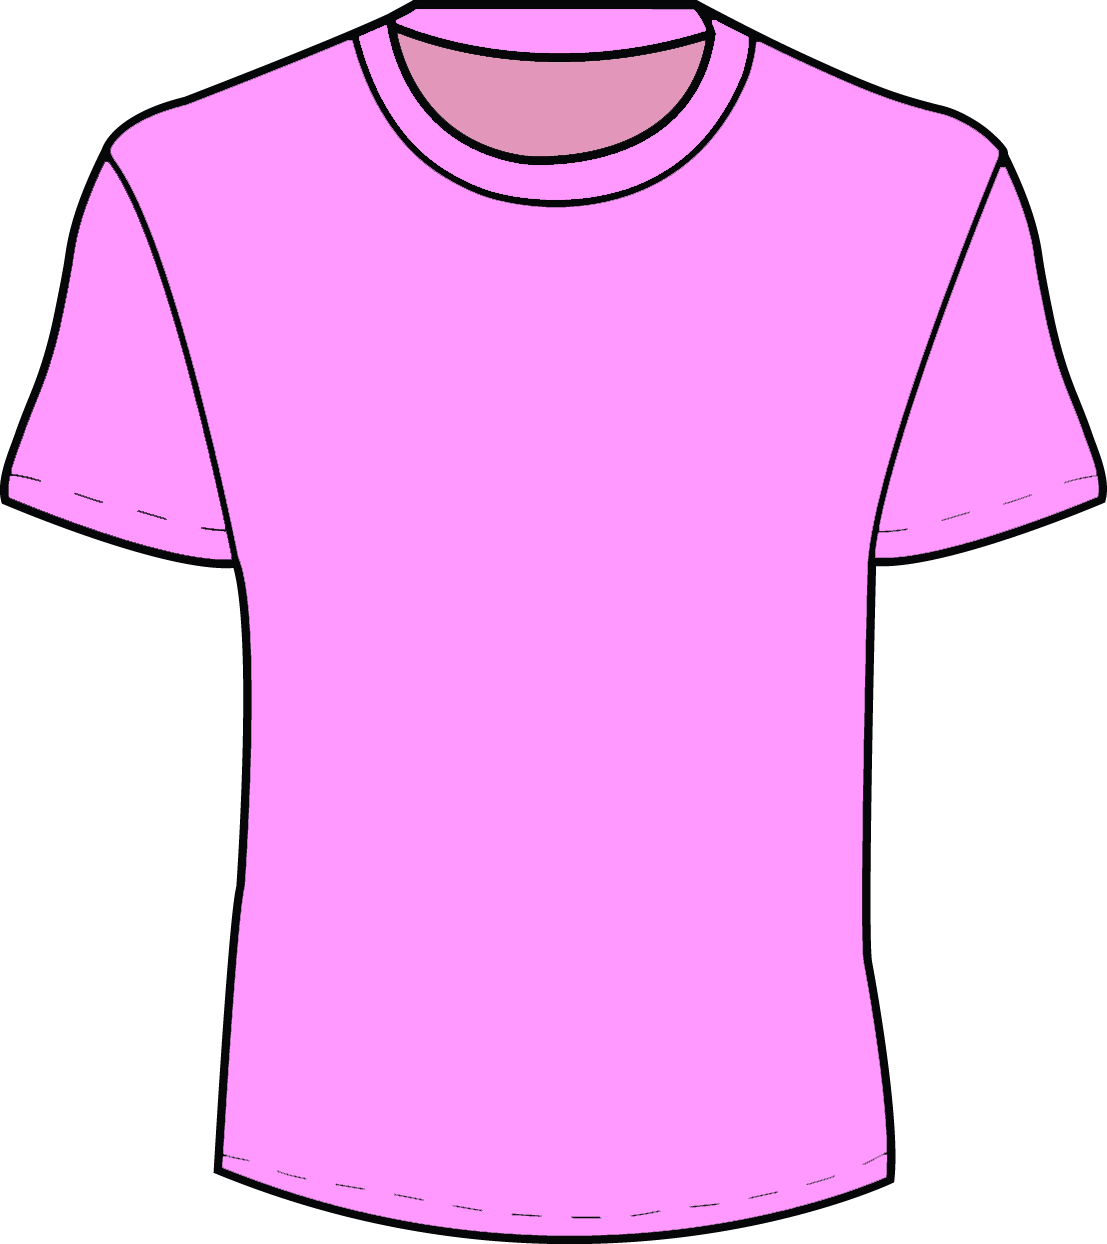 t shirt shape clipart - photo #38